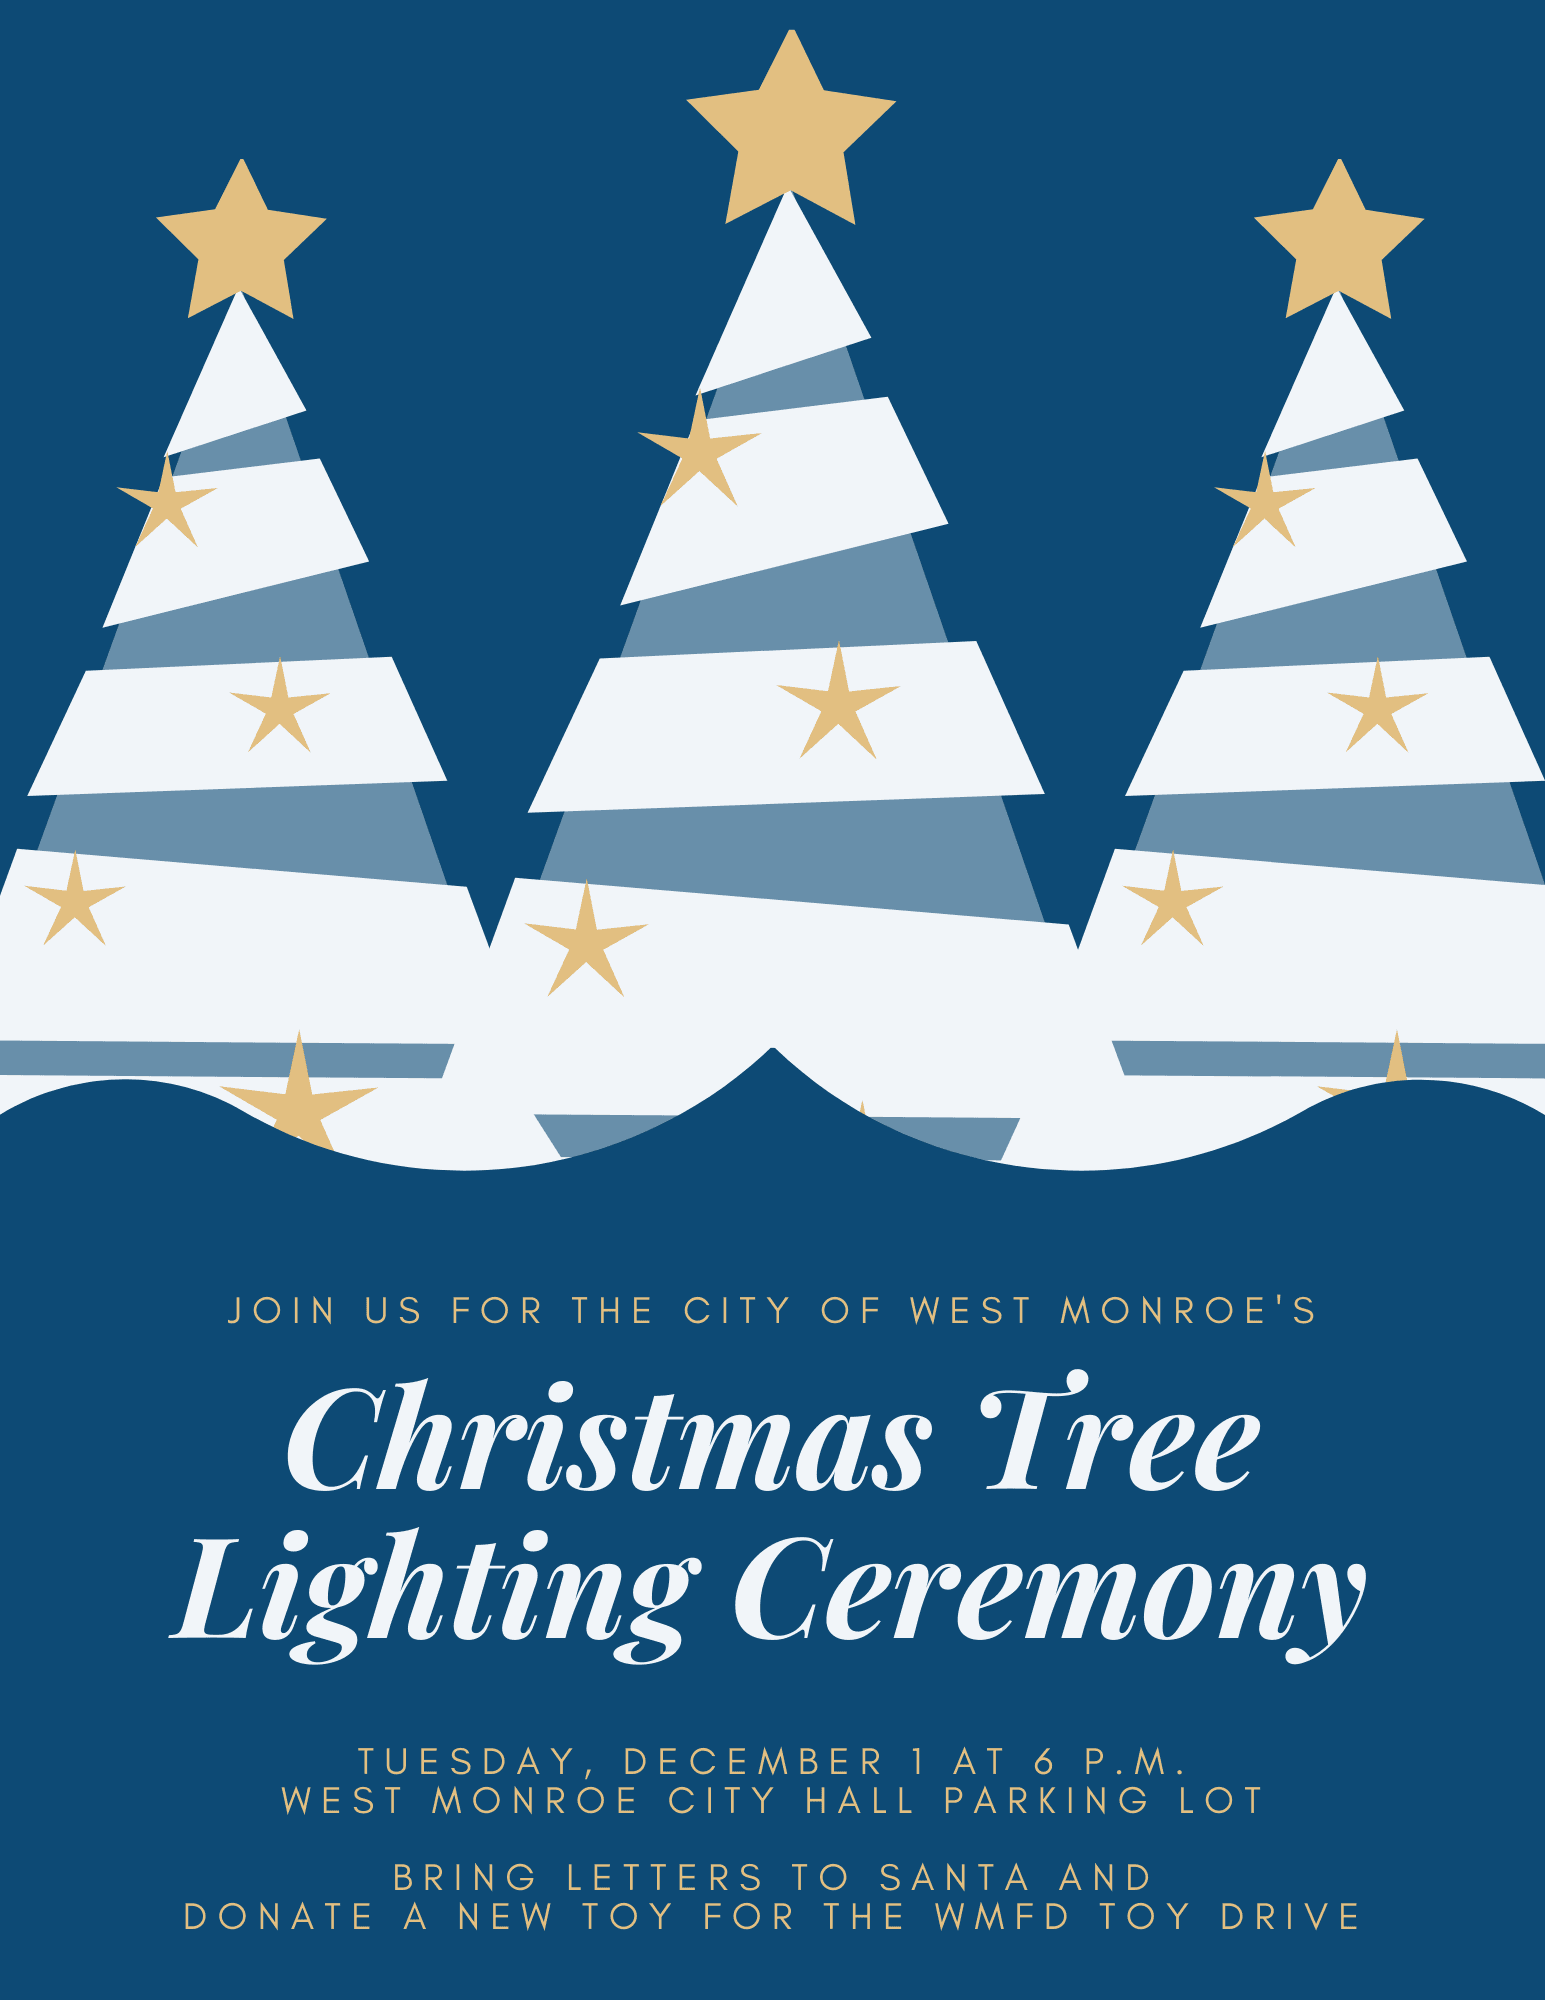 2020 Christmas Tree Lighting Ceremony